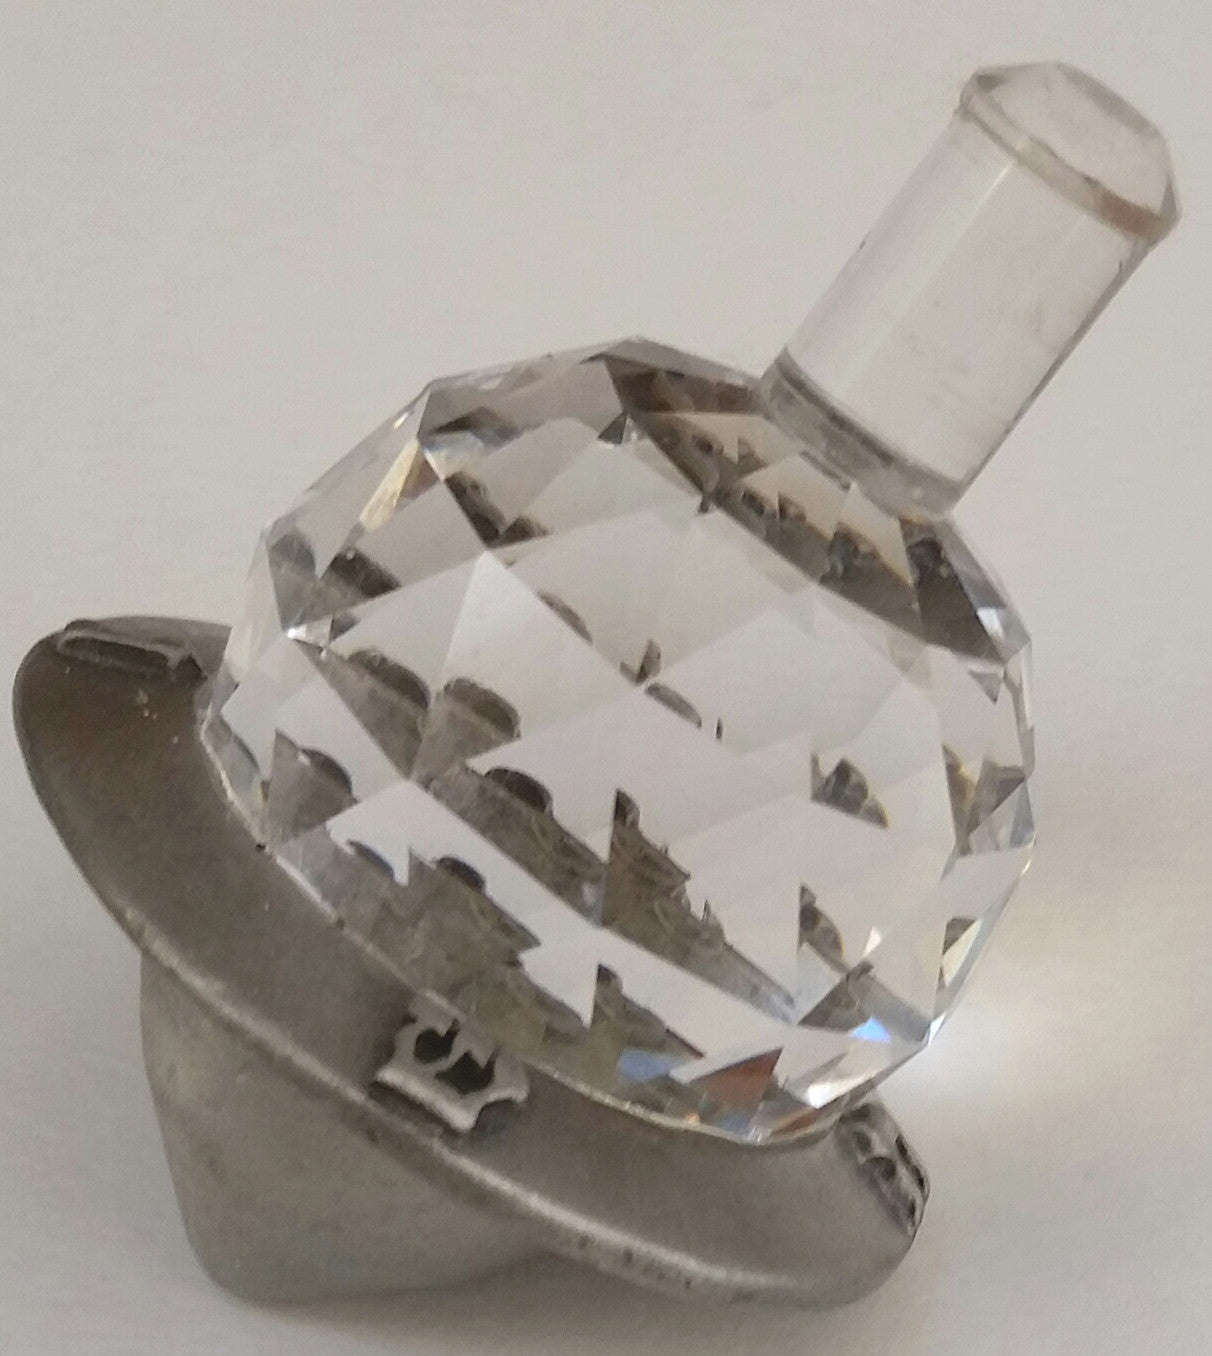 Crystal Dreidel - Pewter Dreidel Handcrafted By Bjcrystalgifts Using Swarovski Crystal